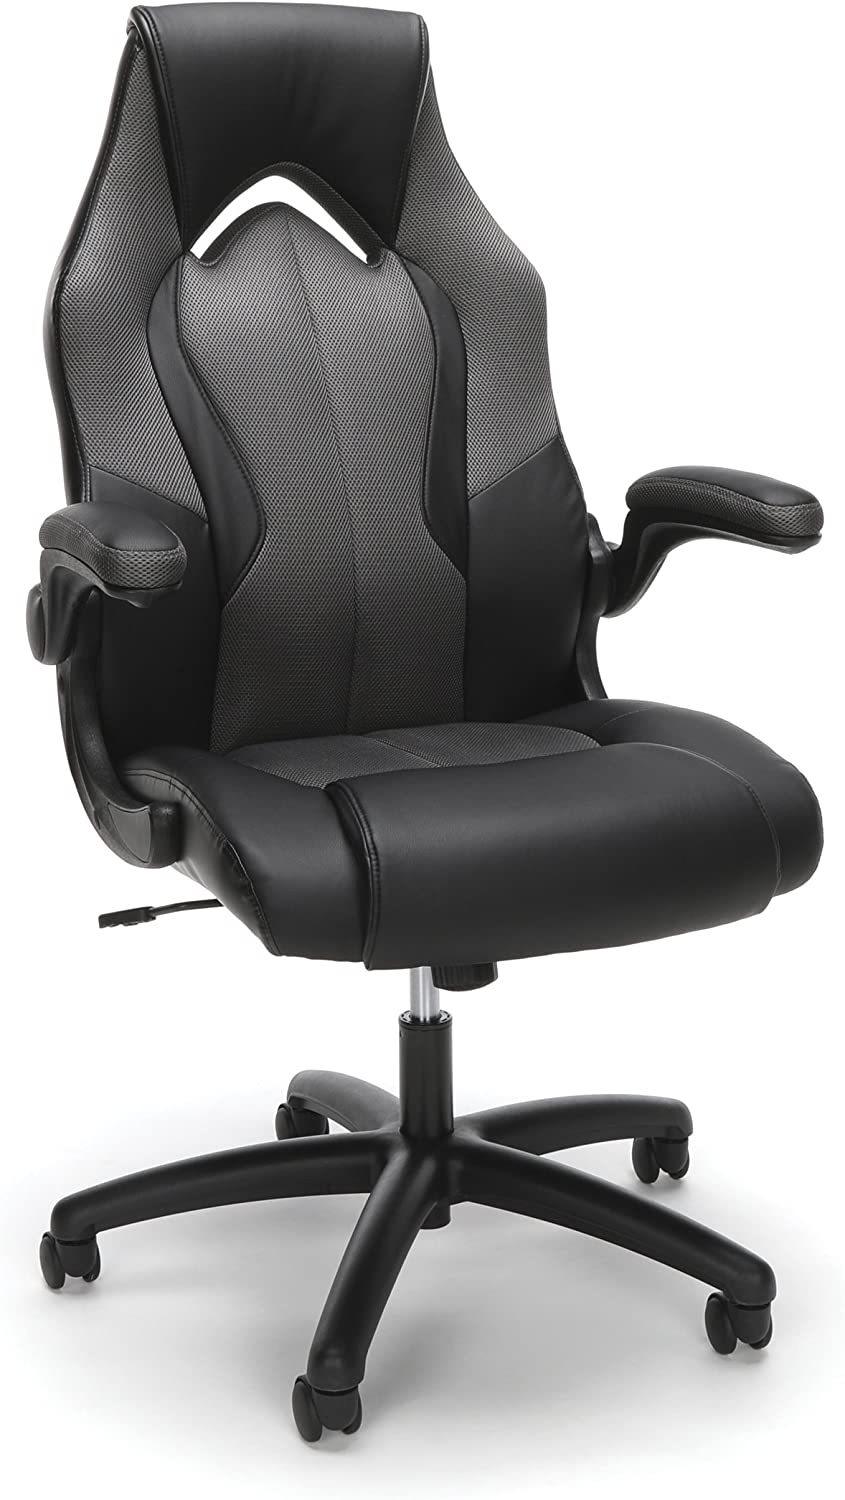 Essentials by OFM Ess-3086 High-Back Racing Style Bonded Leather Gaming Chair, Gray